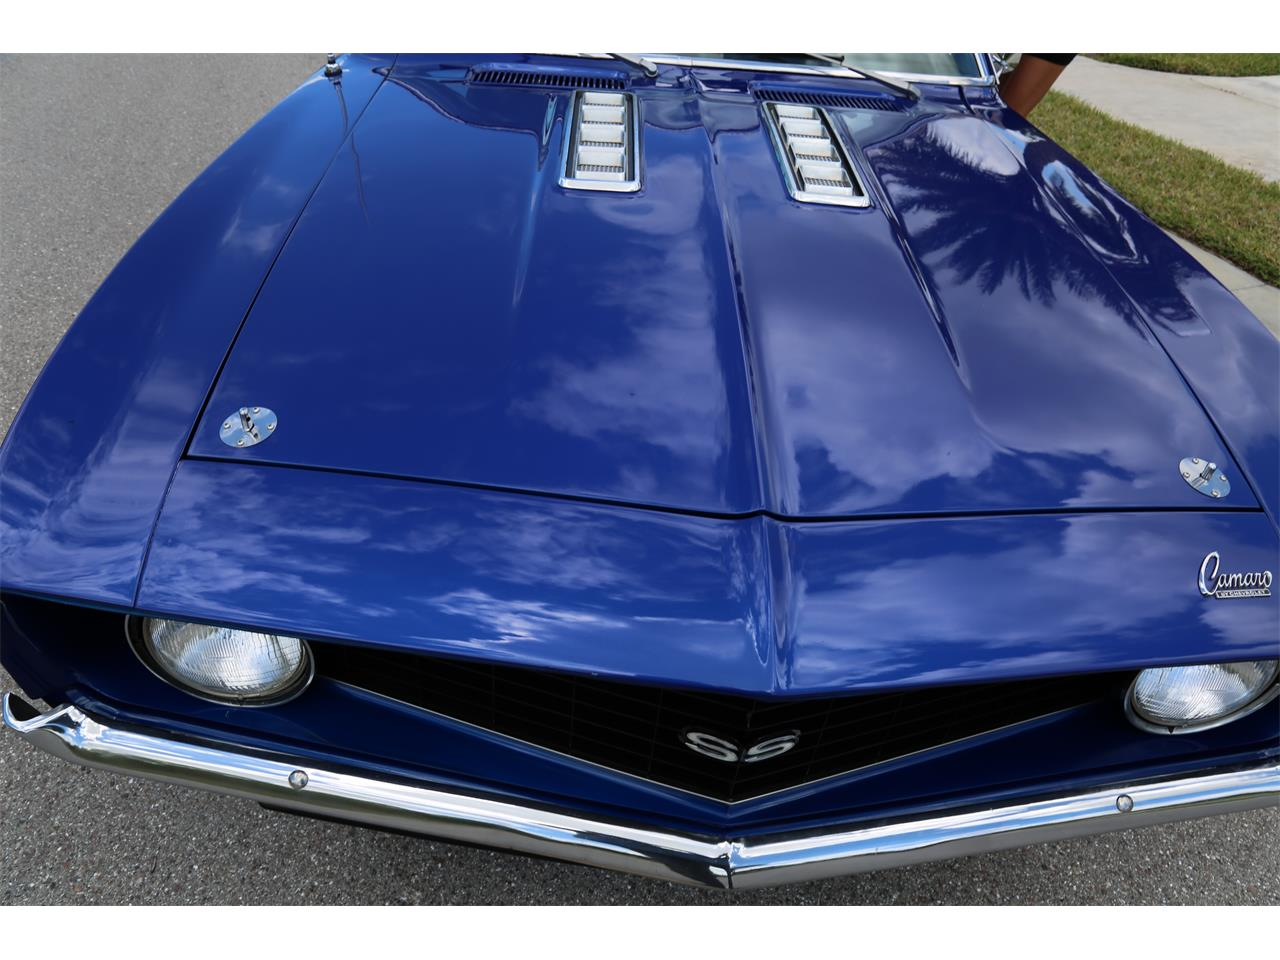 Large Picture of Classic '69 Camaro SS located in Florida - $31,500.00 Offered by Muscle Cars For Sale Inc. - Q2T7